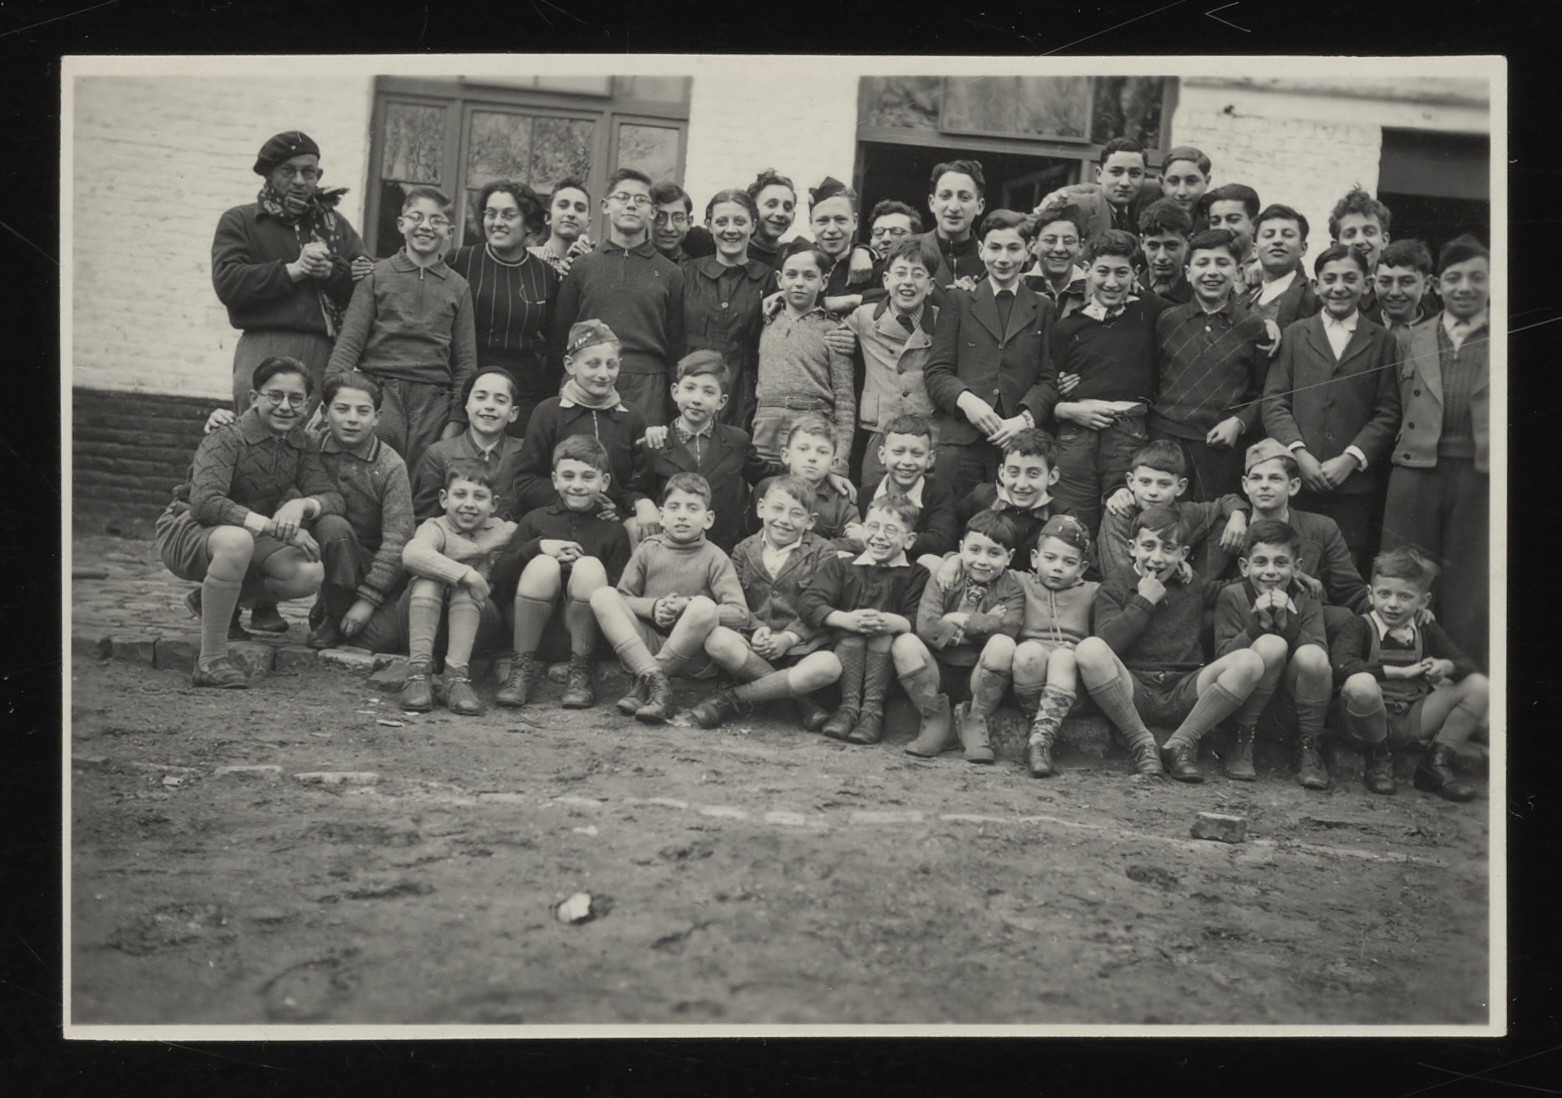 Group portrait of the boys in the Speyer children's home prior to their relocation to the La Hille children's home in France.